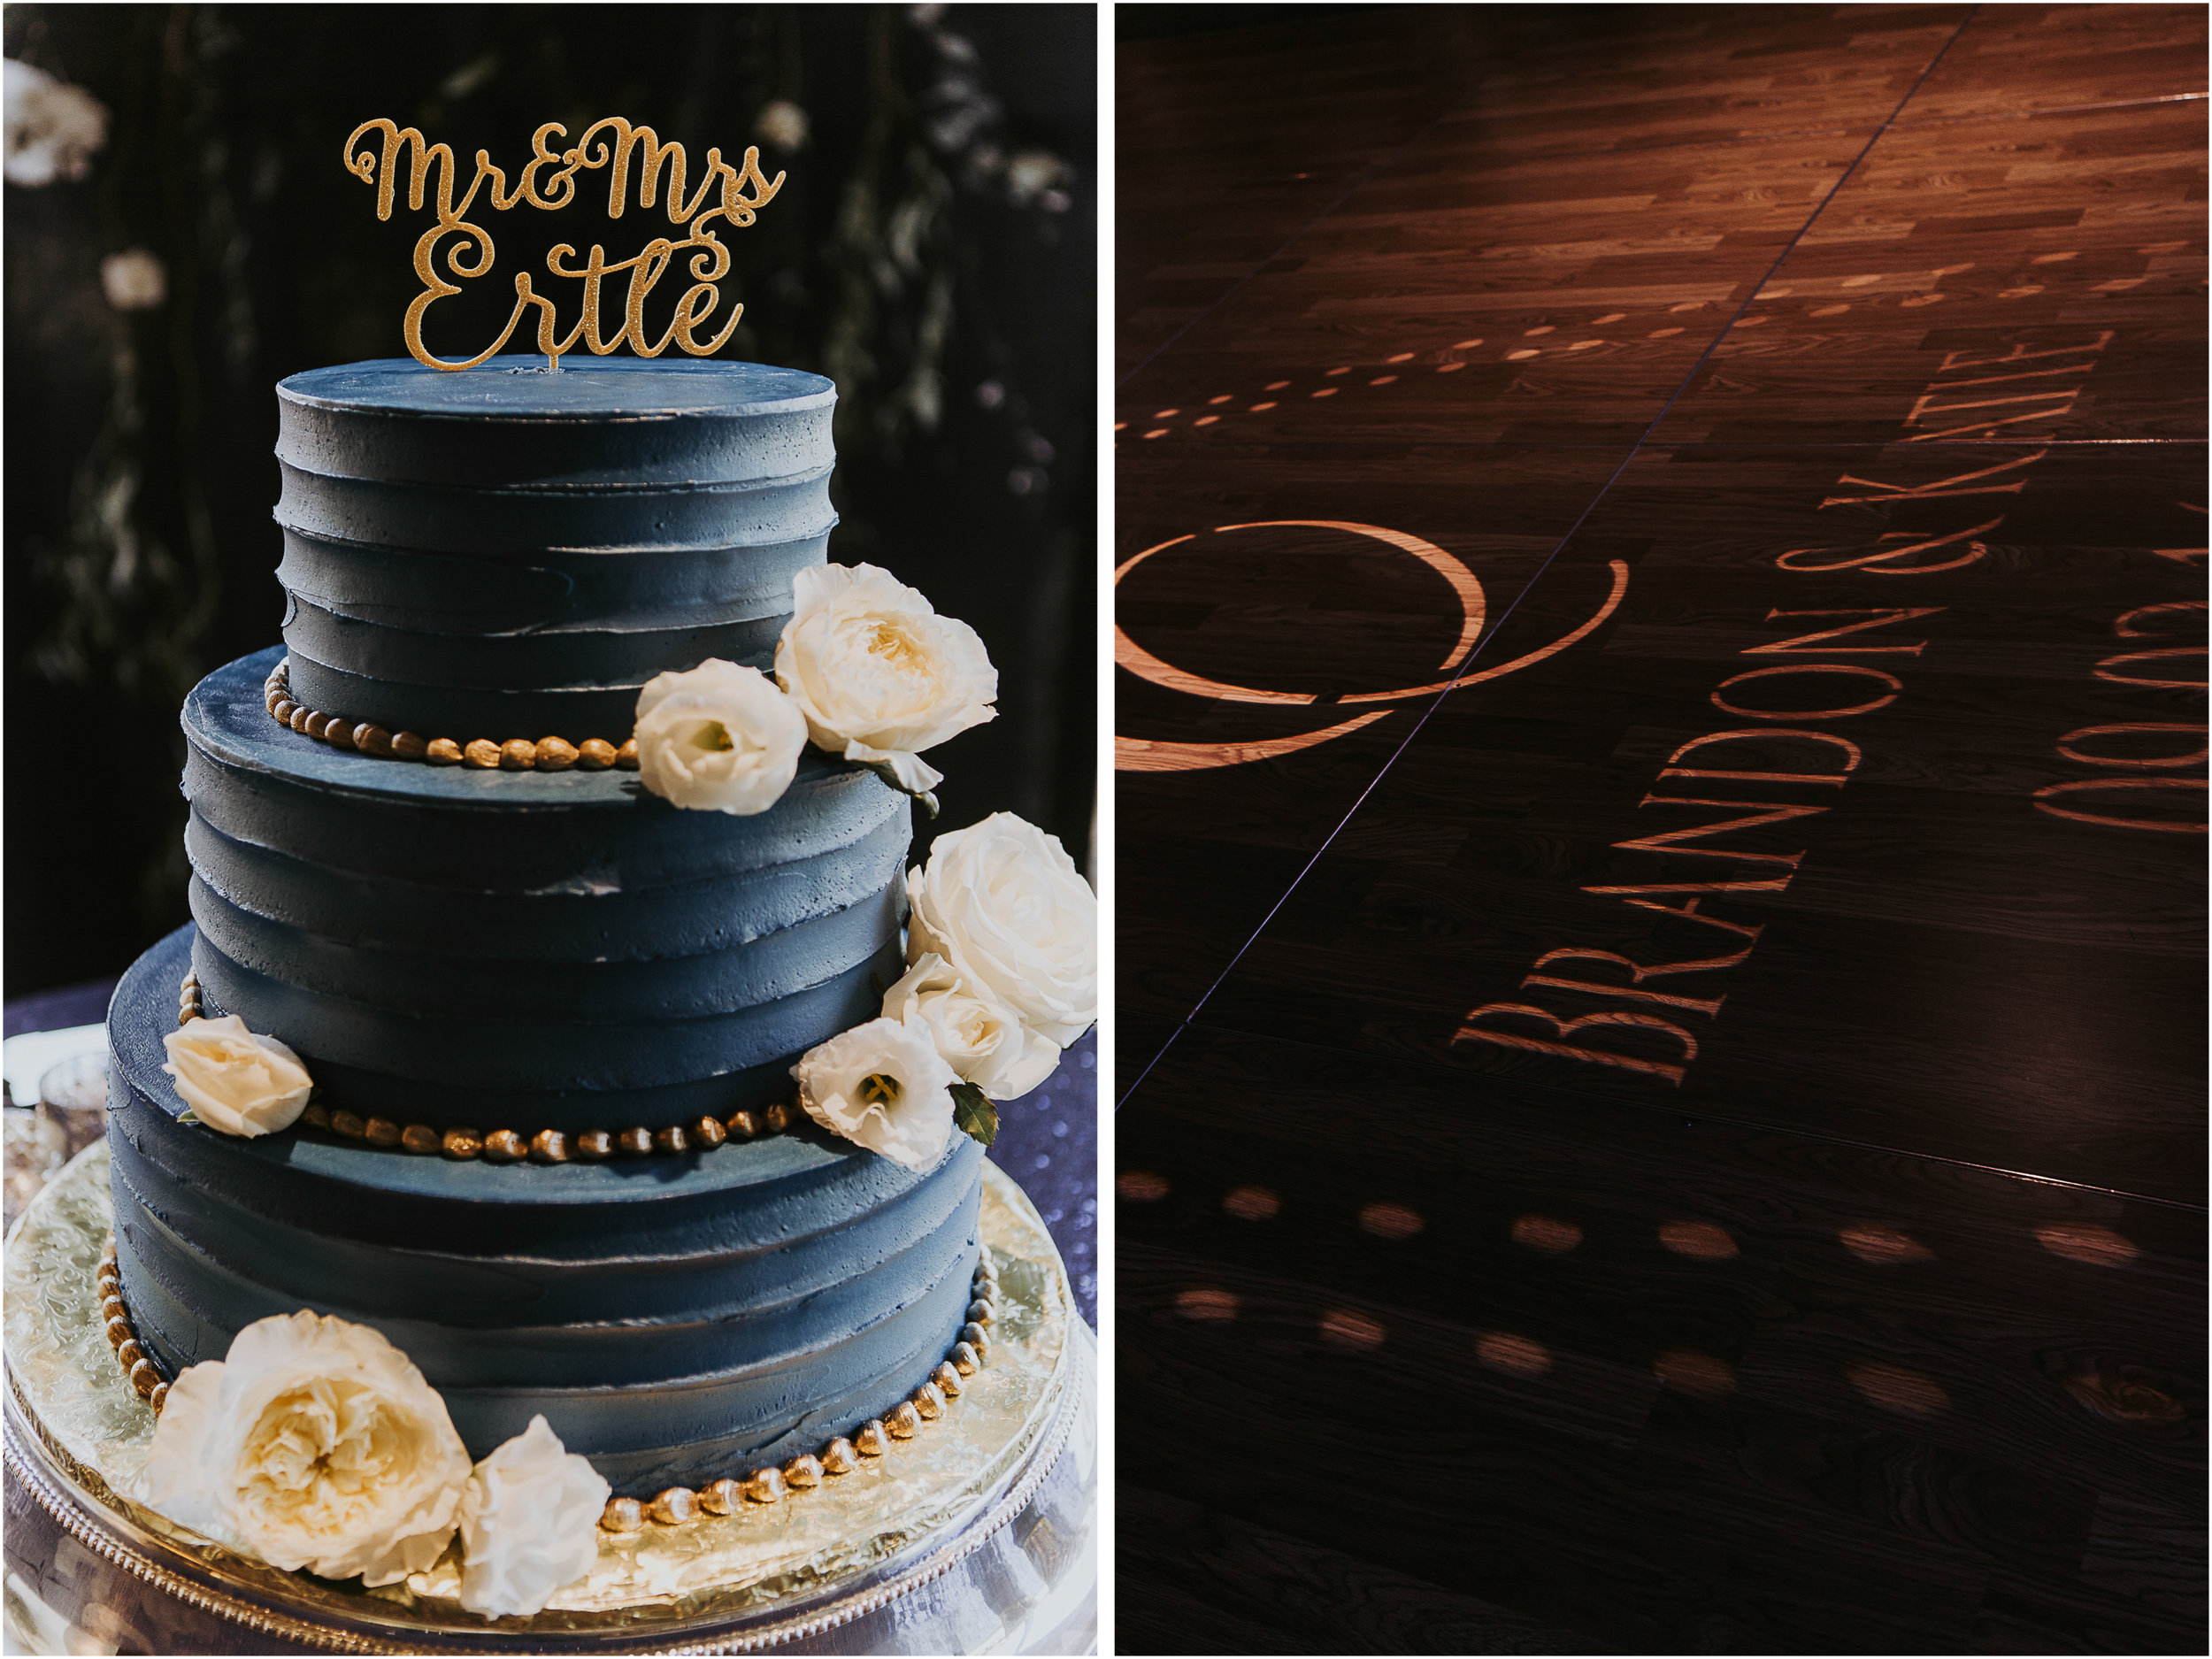 The cake was navy with gold to go with the rest of the wedding design.